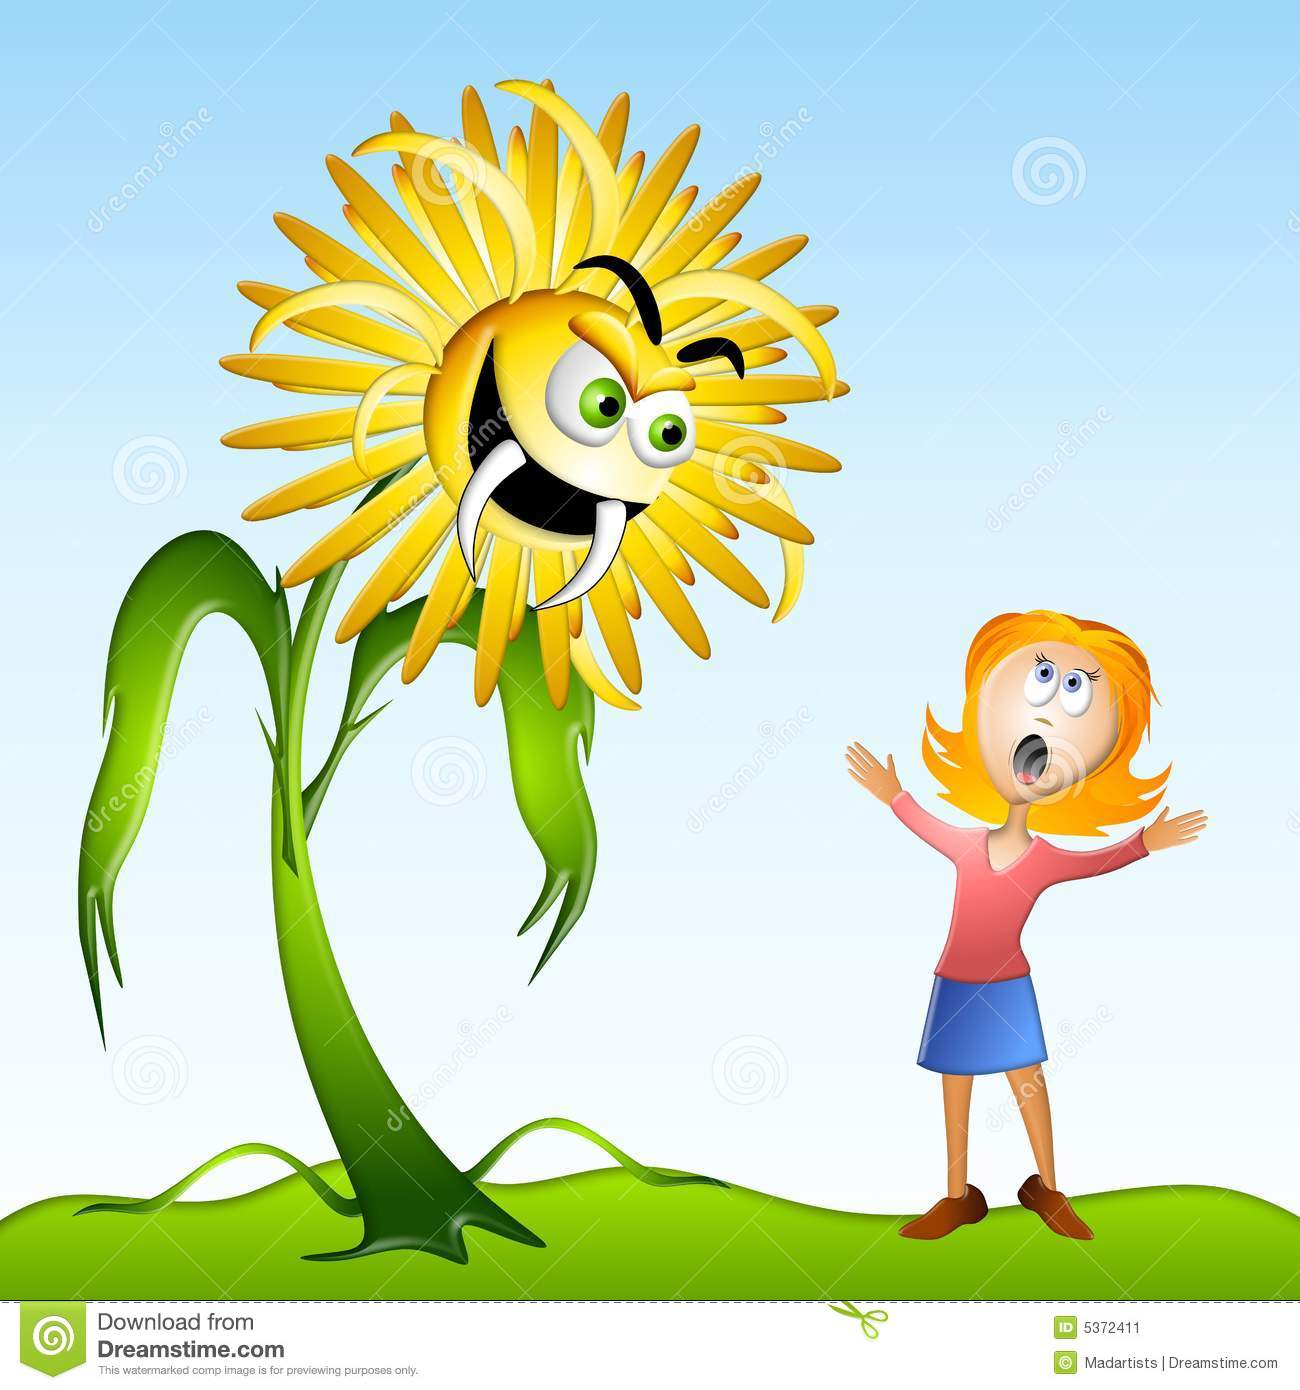 Dandelion Weed Allergy Monster Stock Image.